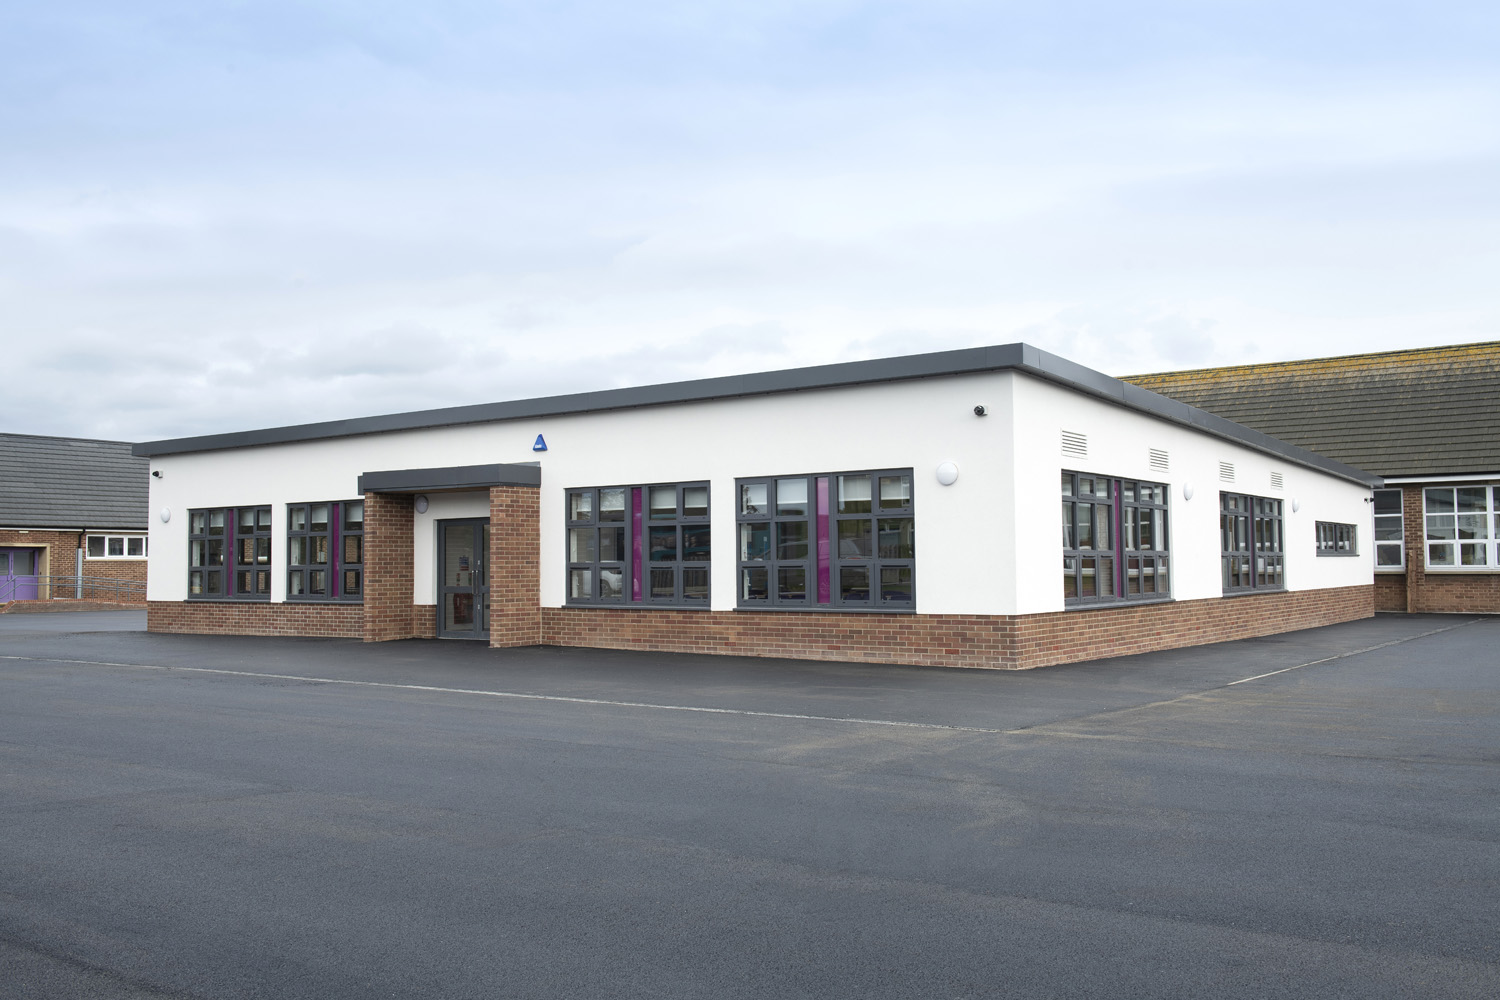 Horton Grange – Modular school expansion